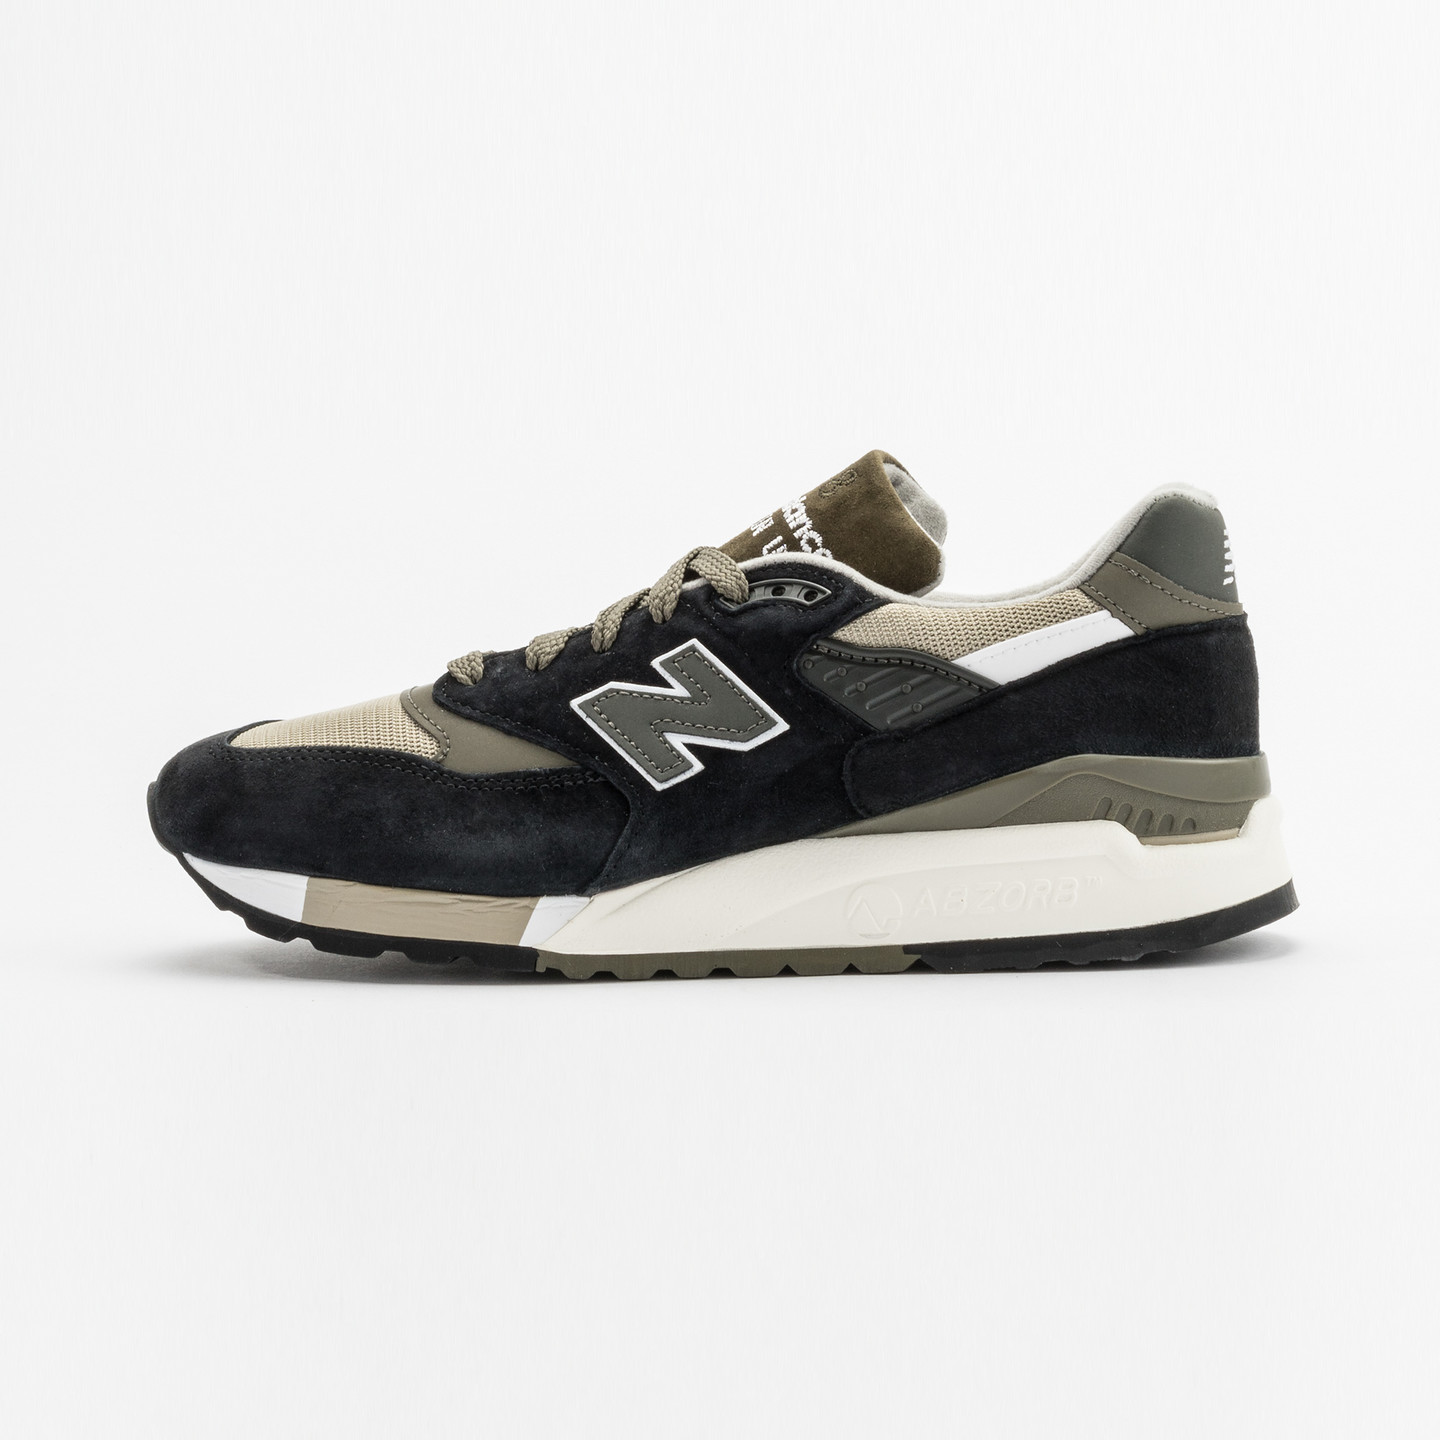 New Balance M998 Made in USA Olive / Black M998CTR-46.5